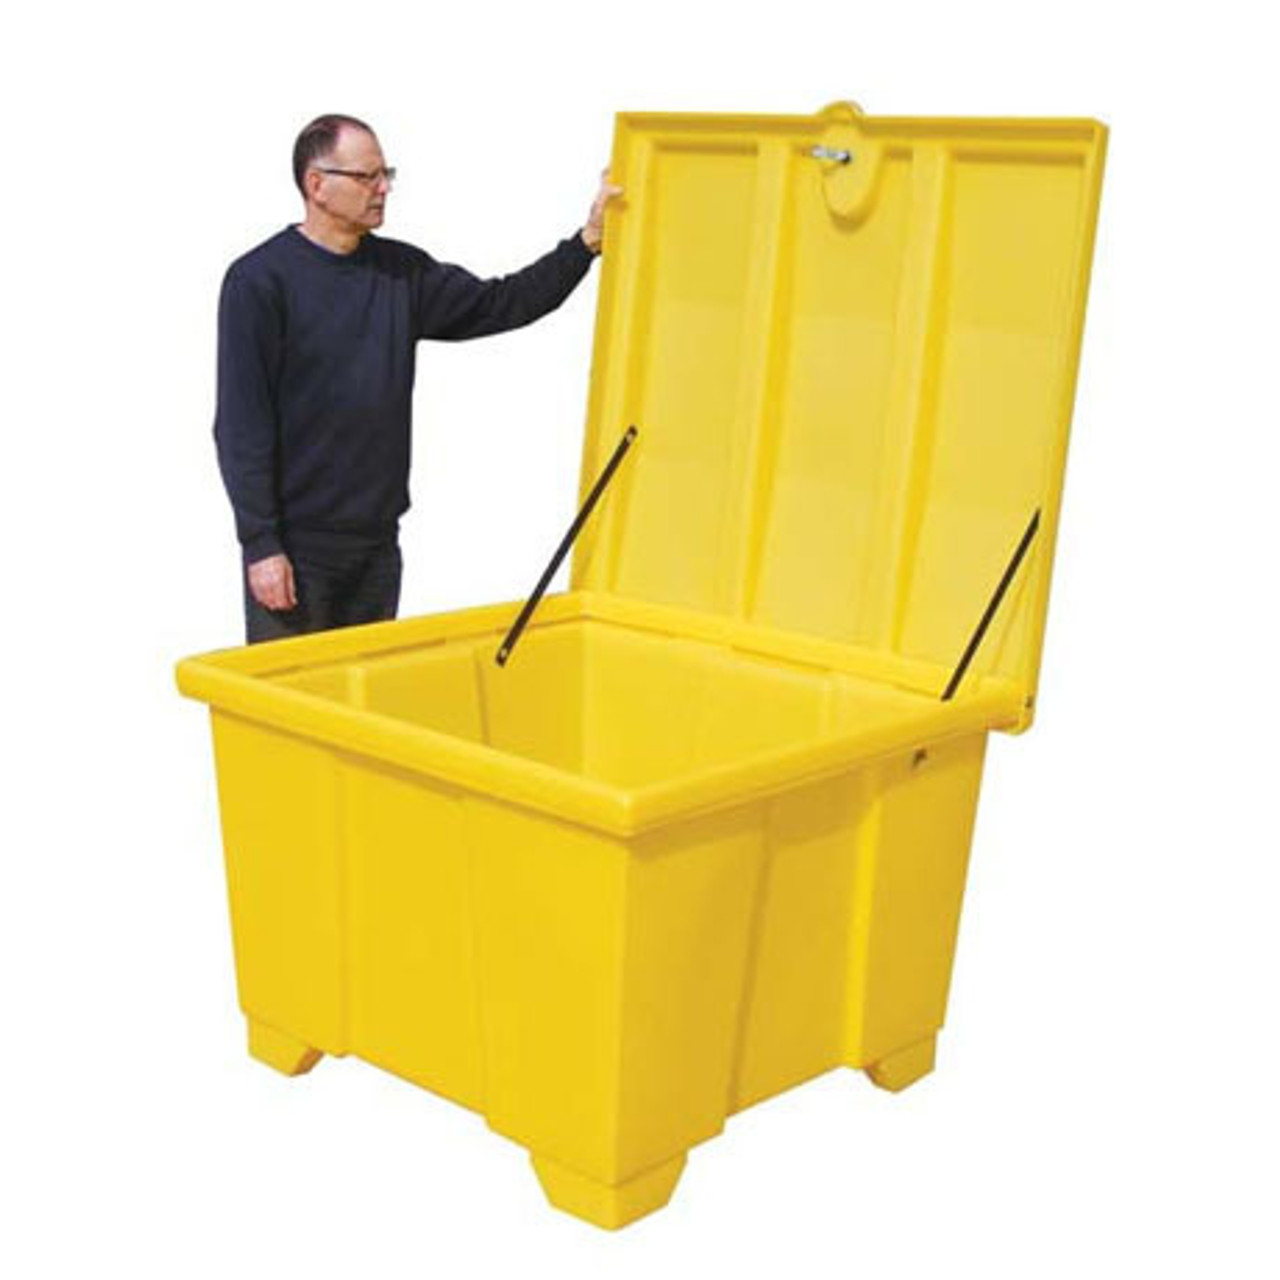 GPSC1 600ltr General Storage Container Bin